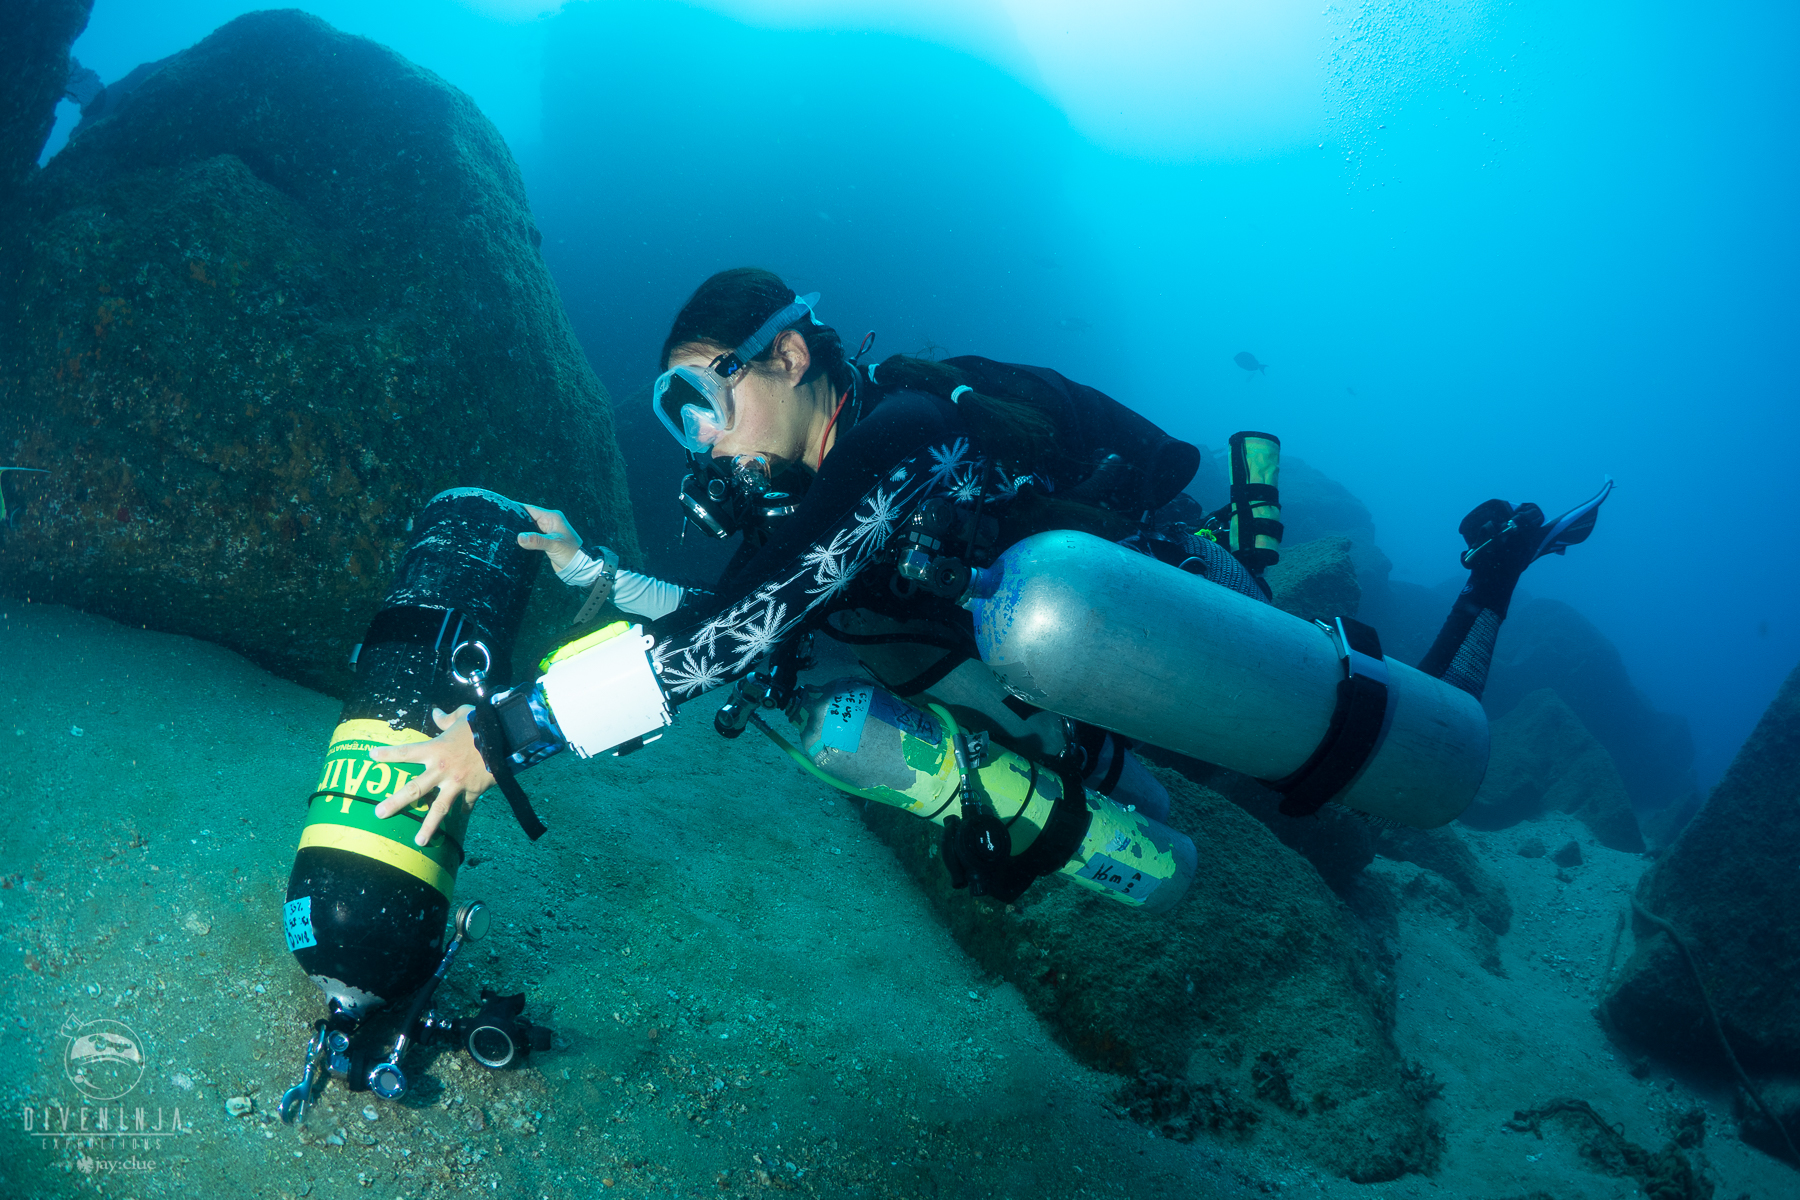 PADI Tec Trimix - Technical Diving courses and training in Cabo San Lucas Mexico